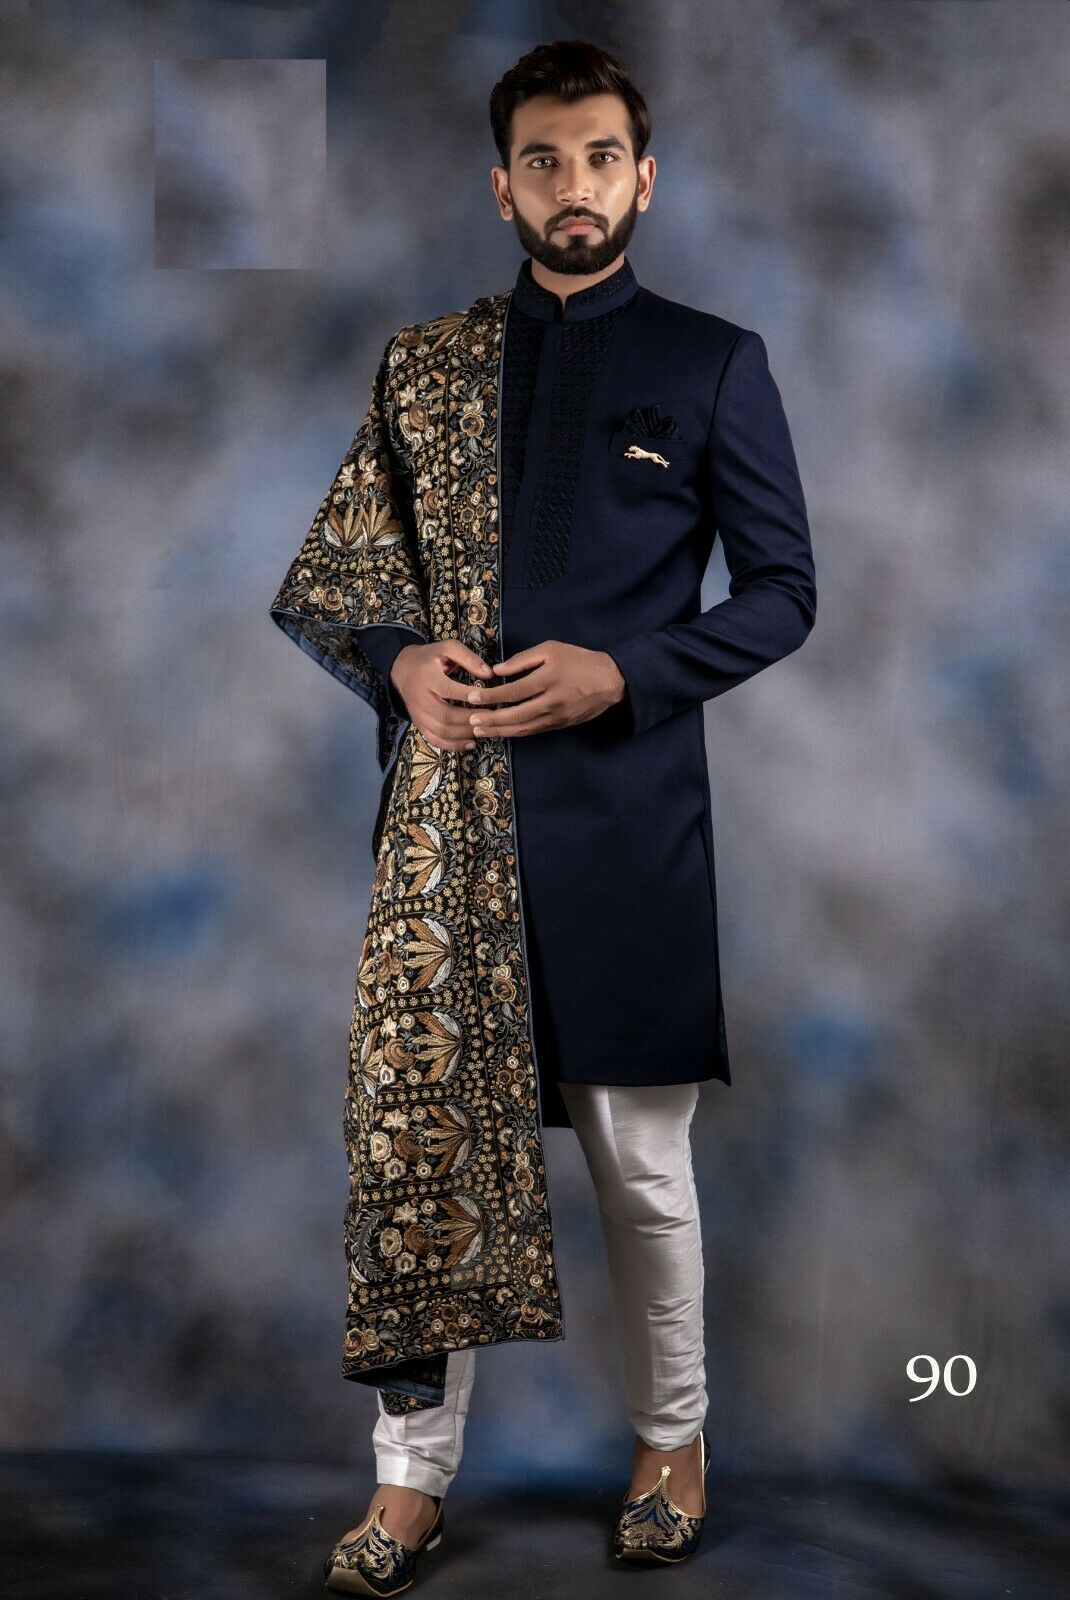 Ethnic Men's Royal Sherwani For Indian Wedding Luxurious Indoa Wester Two Piece